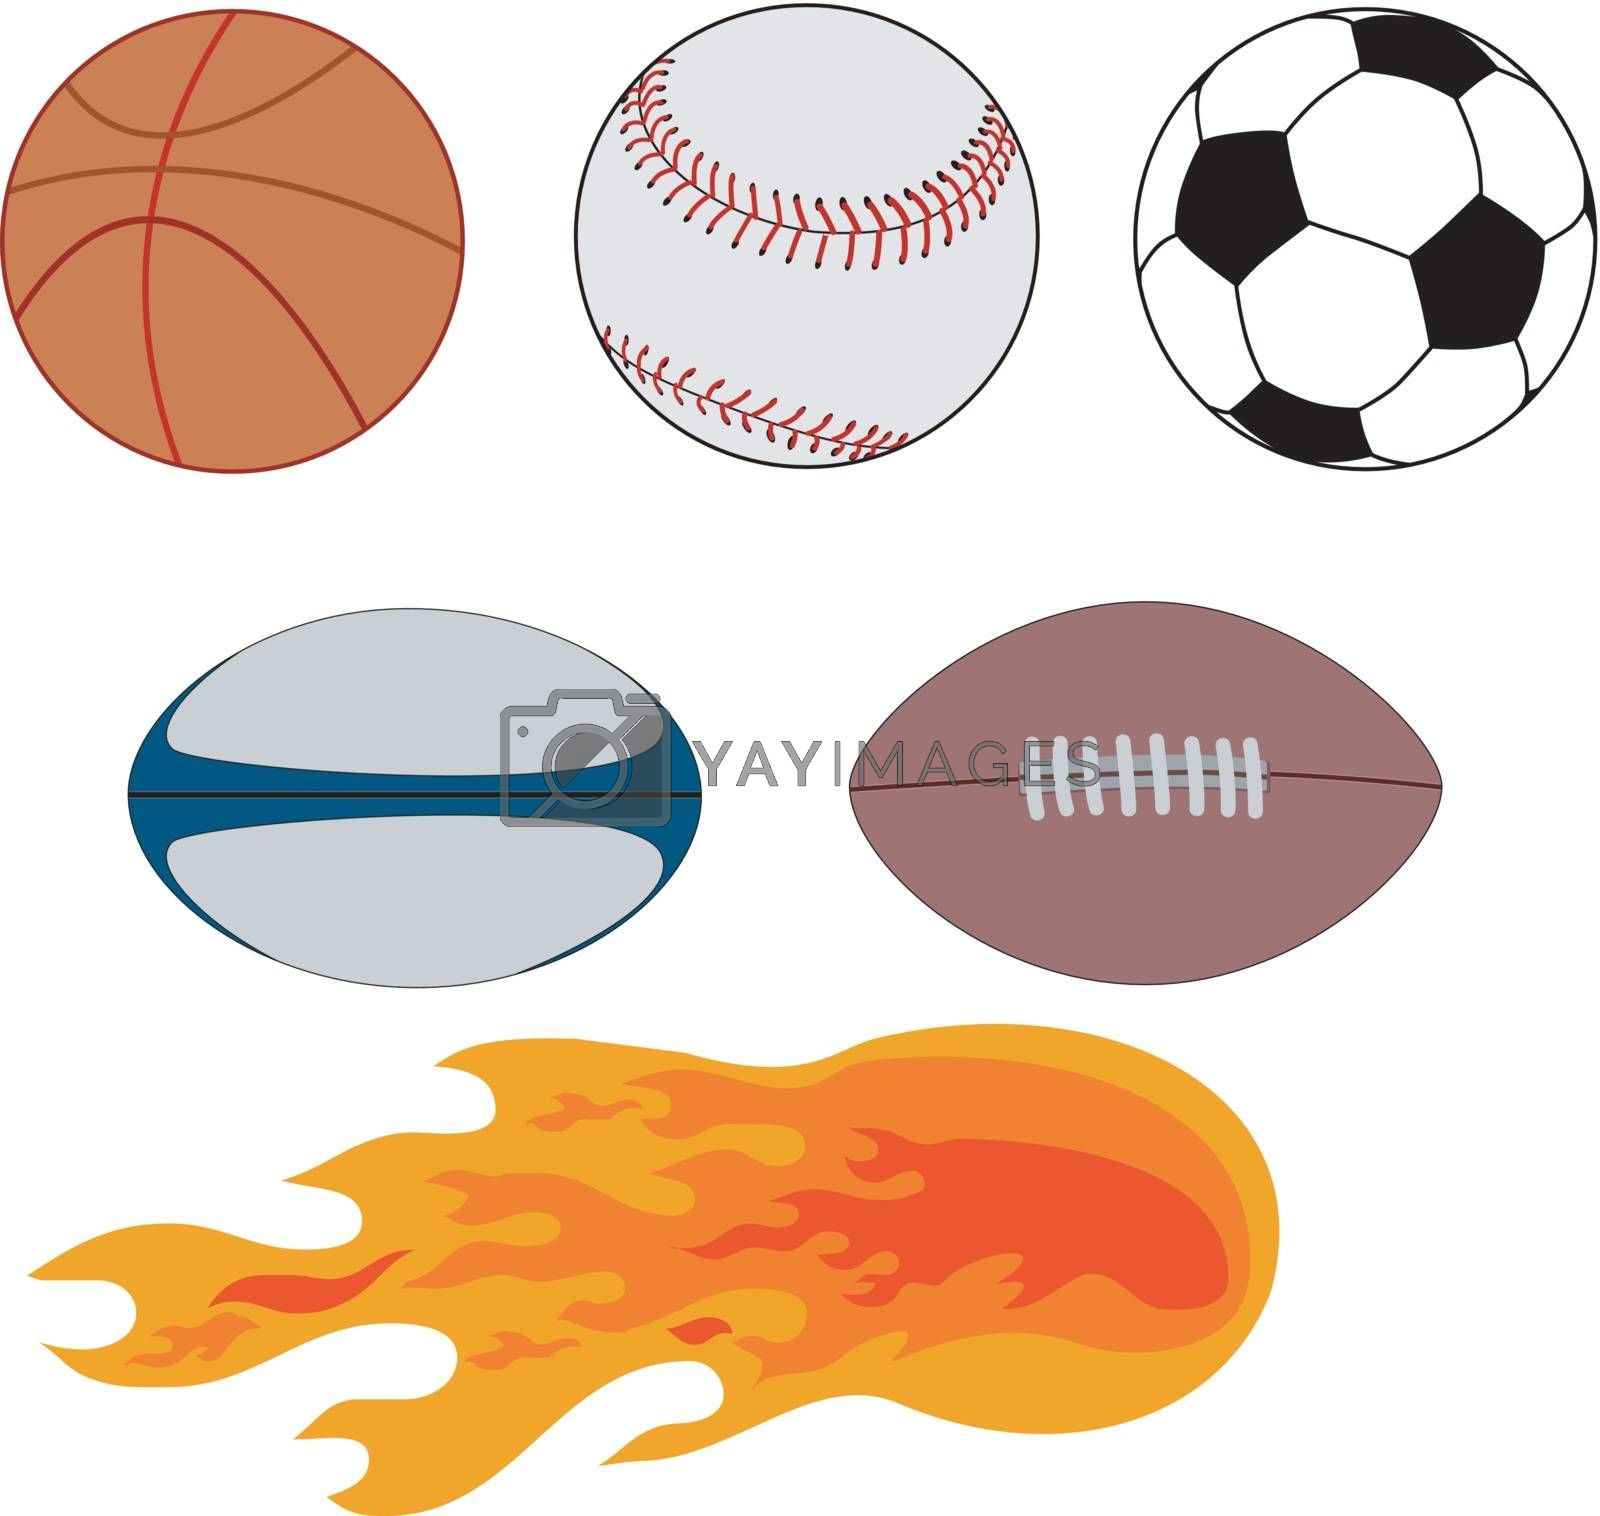 Illustration of various sports balls including a basketball, baseball, soccer ball, rugby ball, football, and ball of flame.